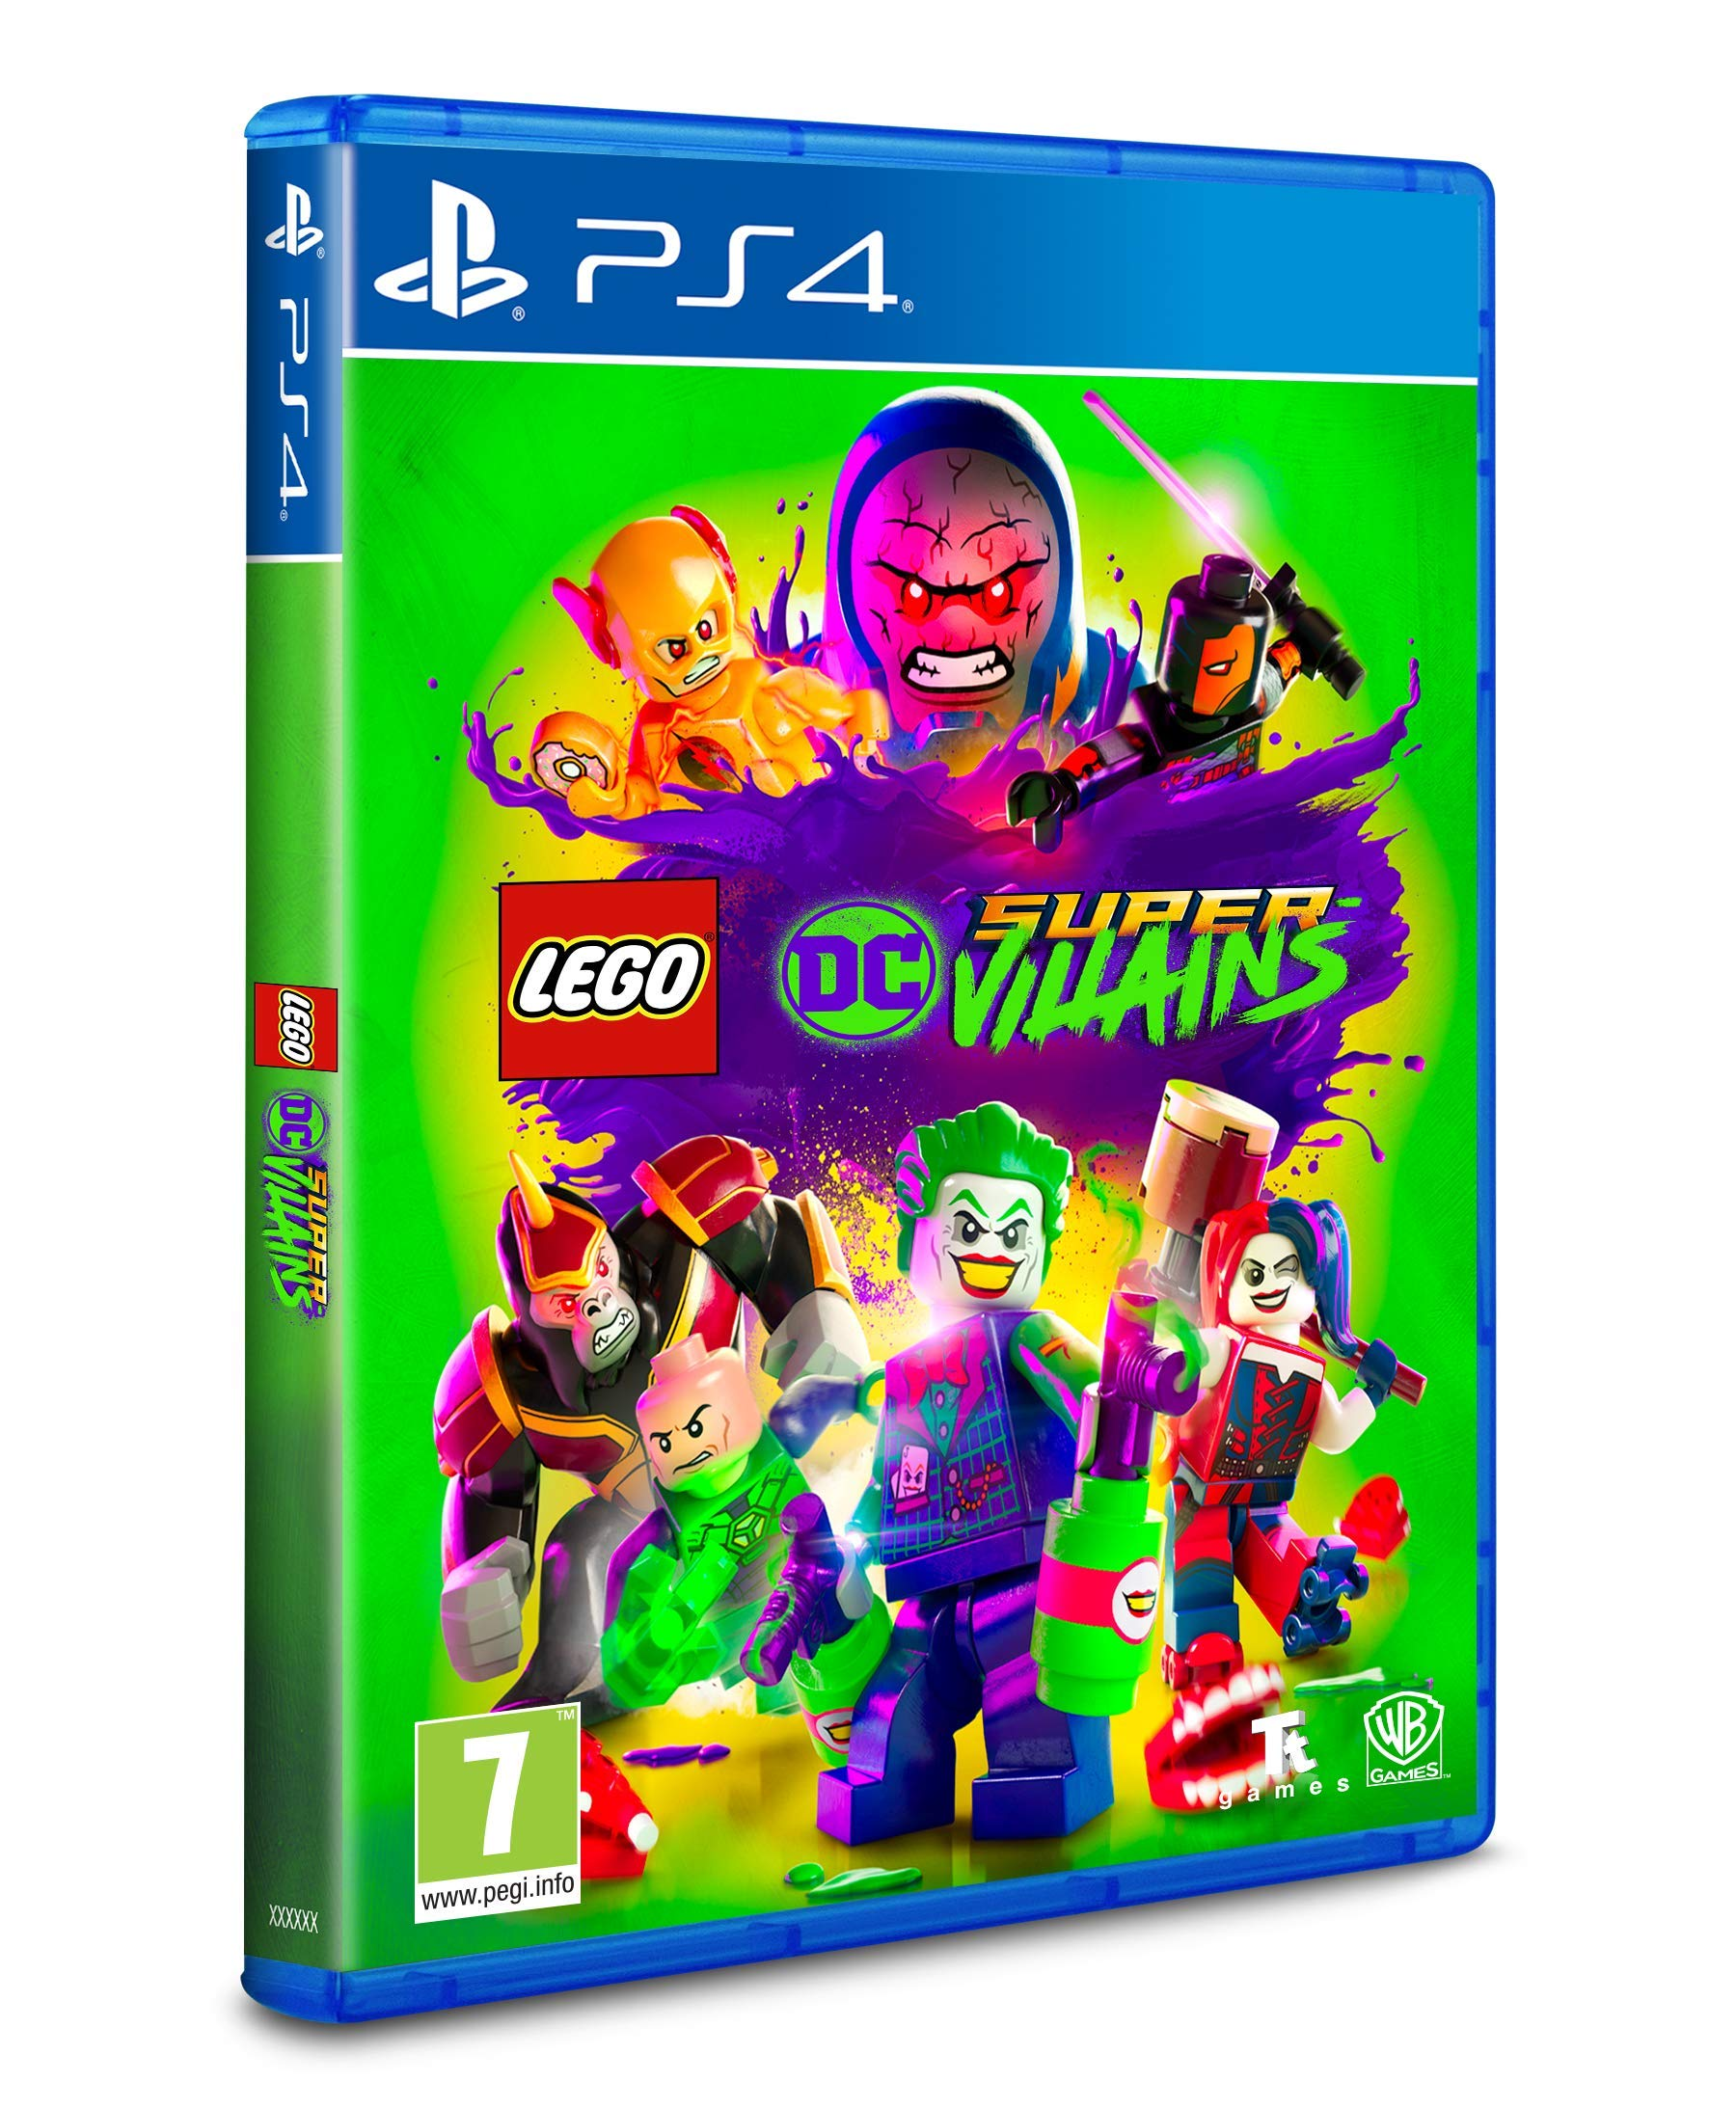 PS4 - LEGO DC Super Villains - [PAL EU]